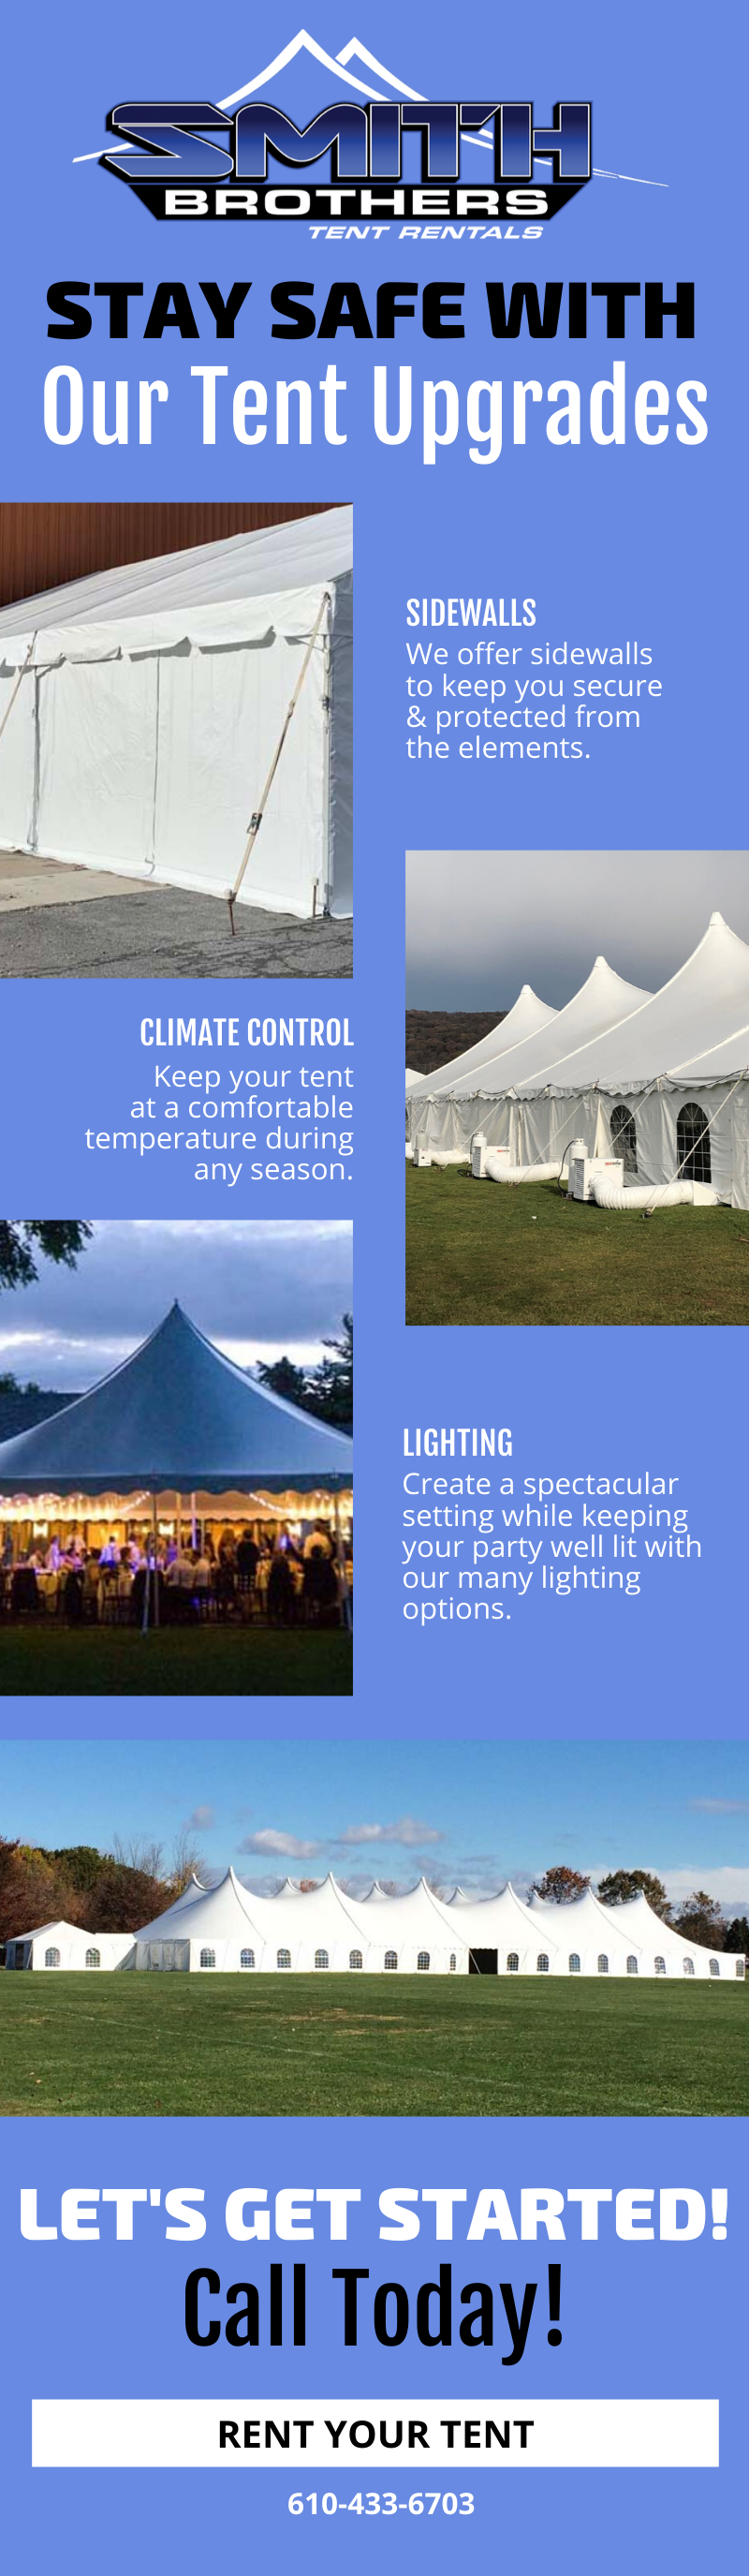 Stay Safe With Our Tent Upgrades